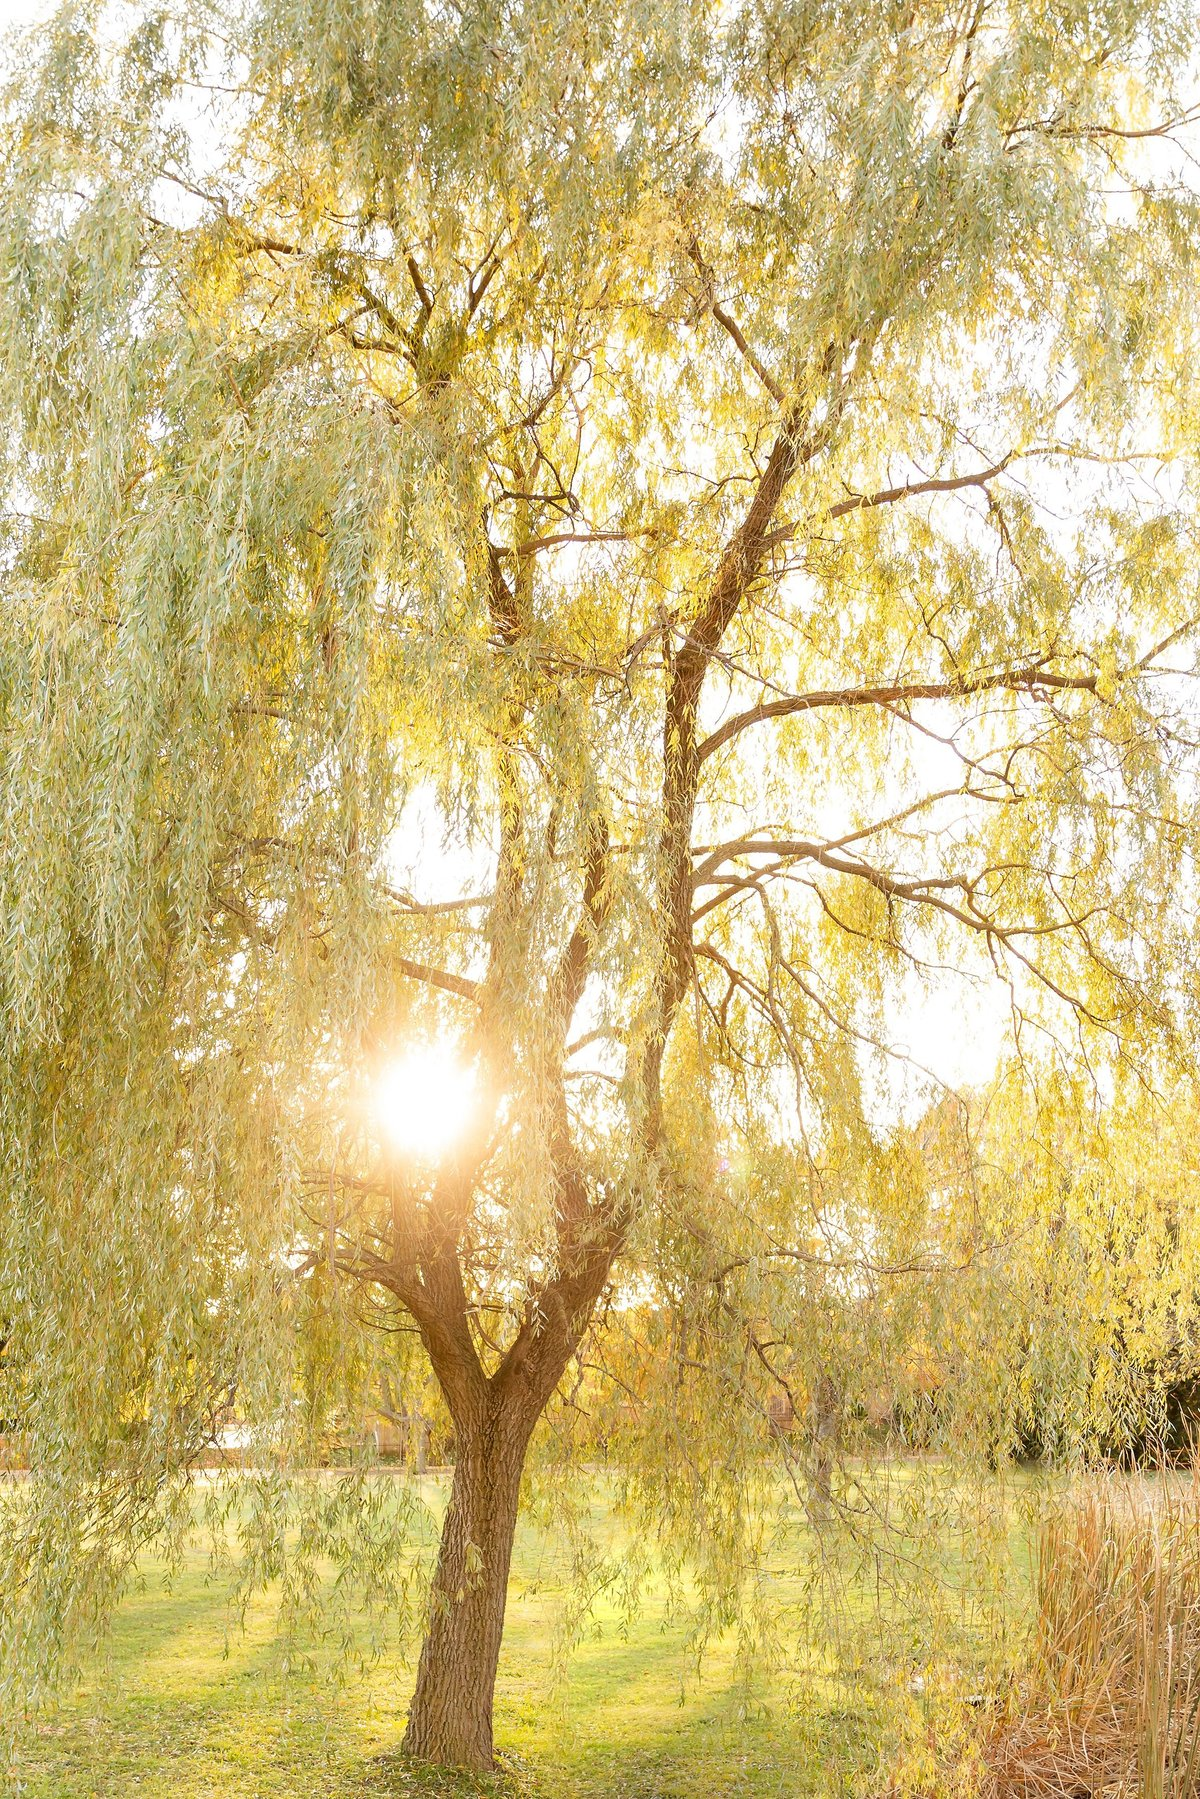 Willow-tree-with-the-sunset-streaming-through-at-arva-park-in-London-Ontario